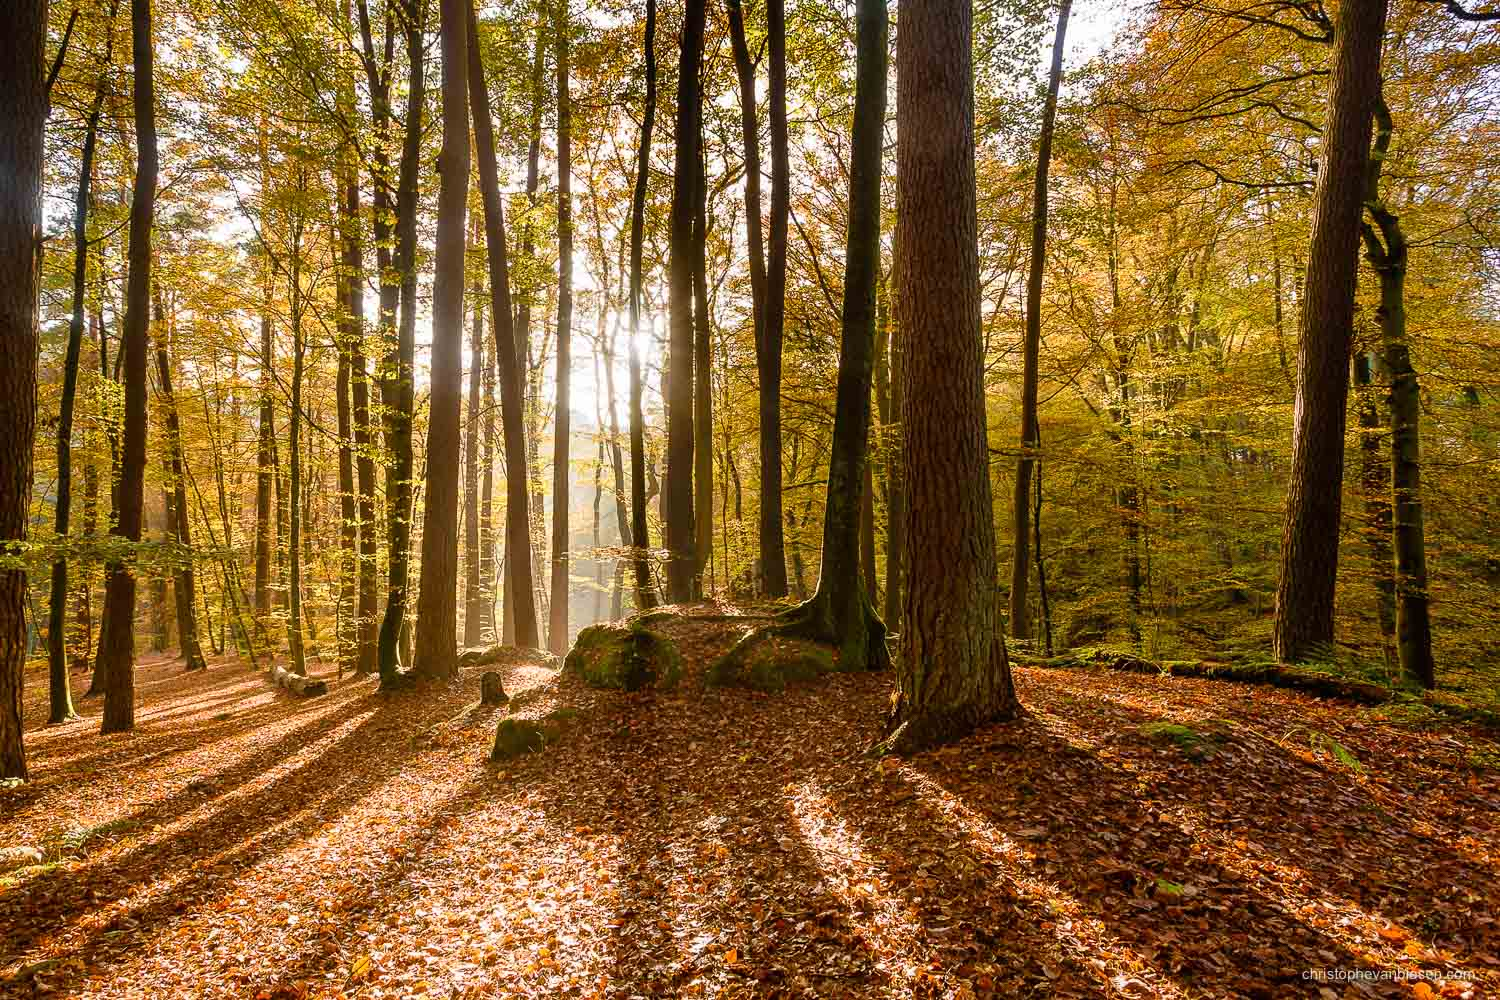 Visit the Mullerthal - Luxembourg - Autumn in Luxembourg's forests in the Mullerthal region - Creeping Shadows